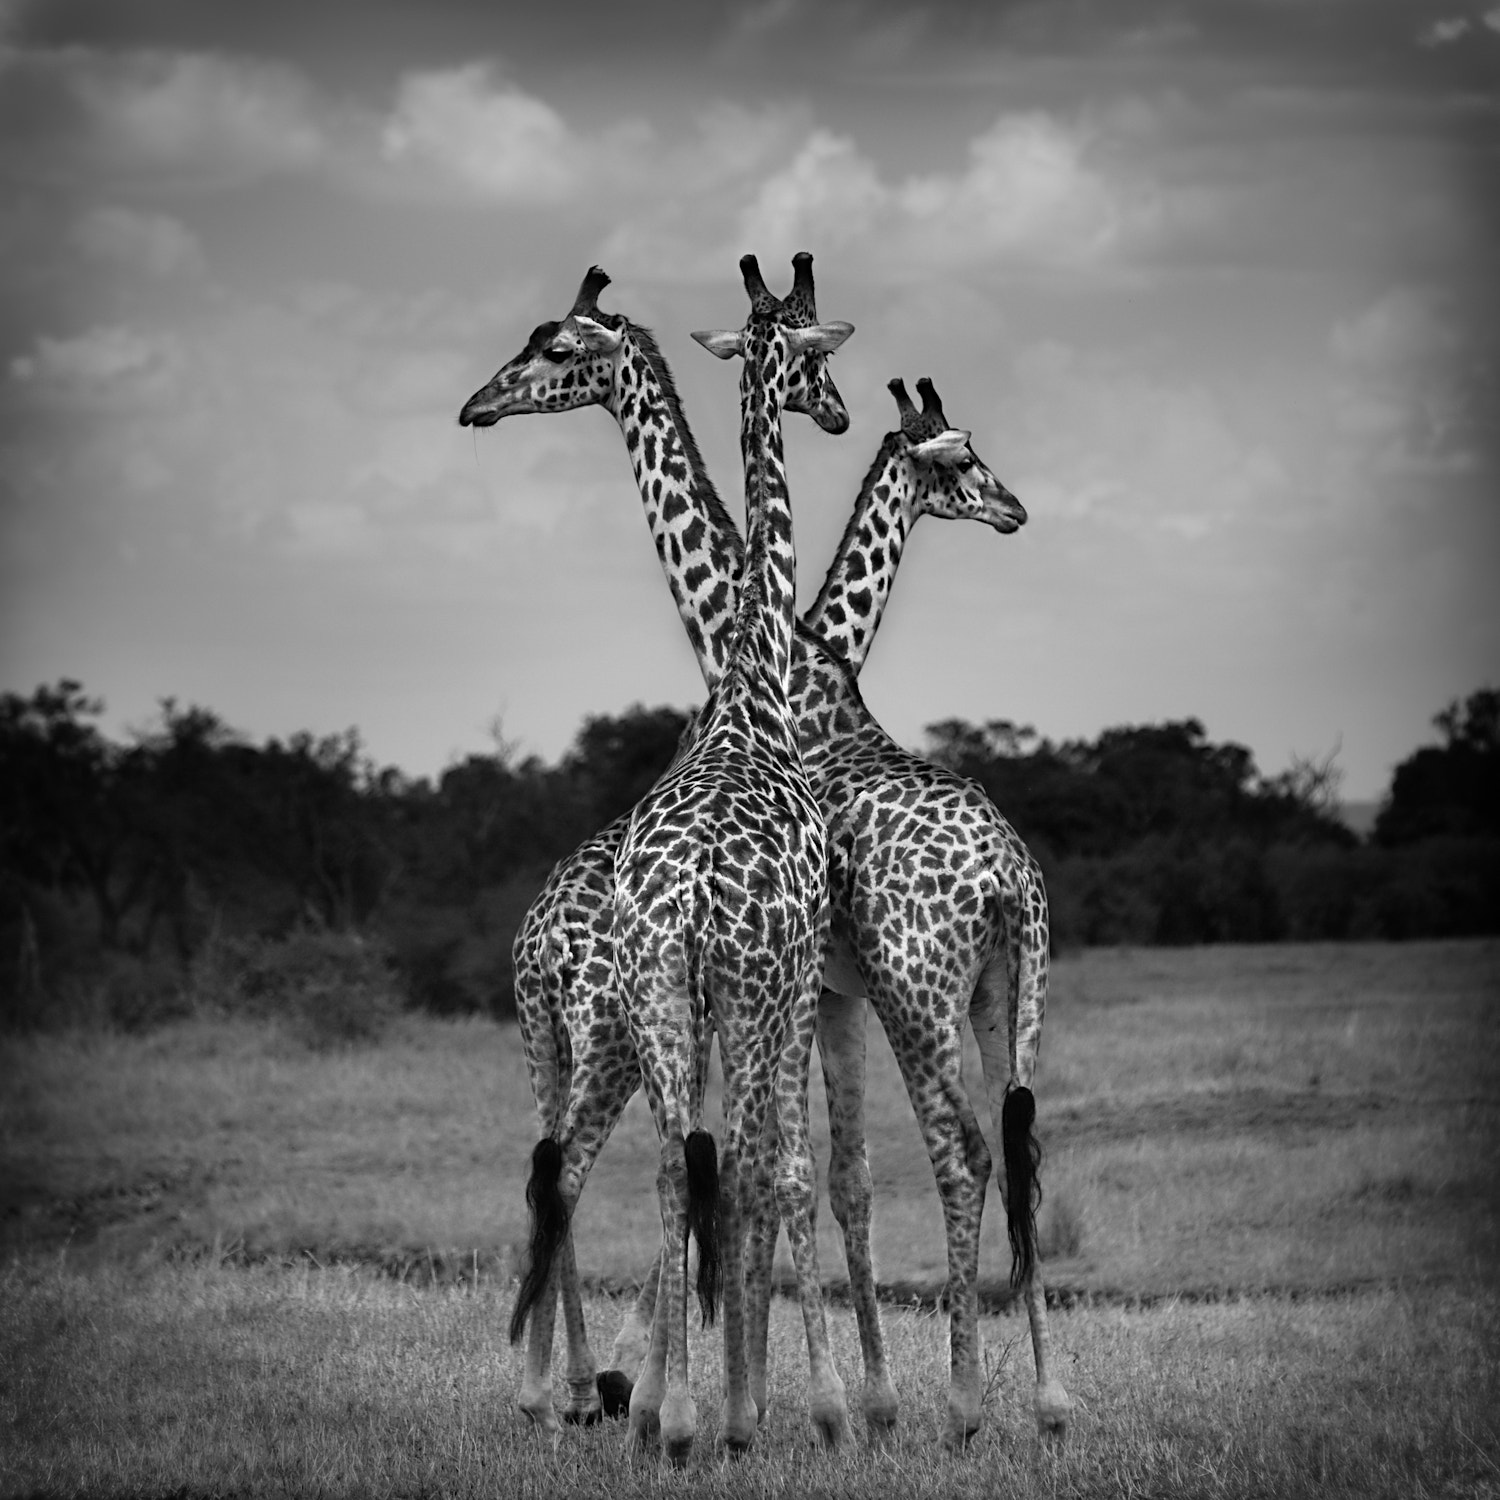 Photograph Giraffe Trio by Urszula Kozak on 500px